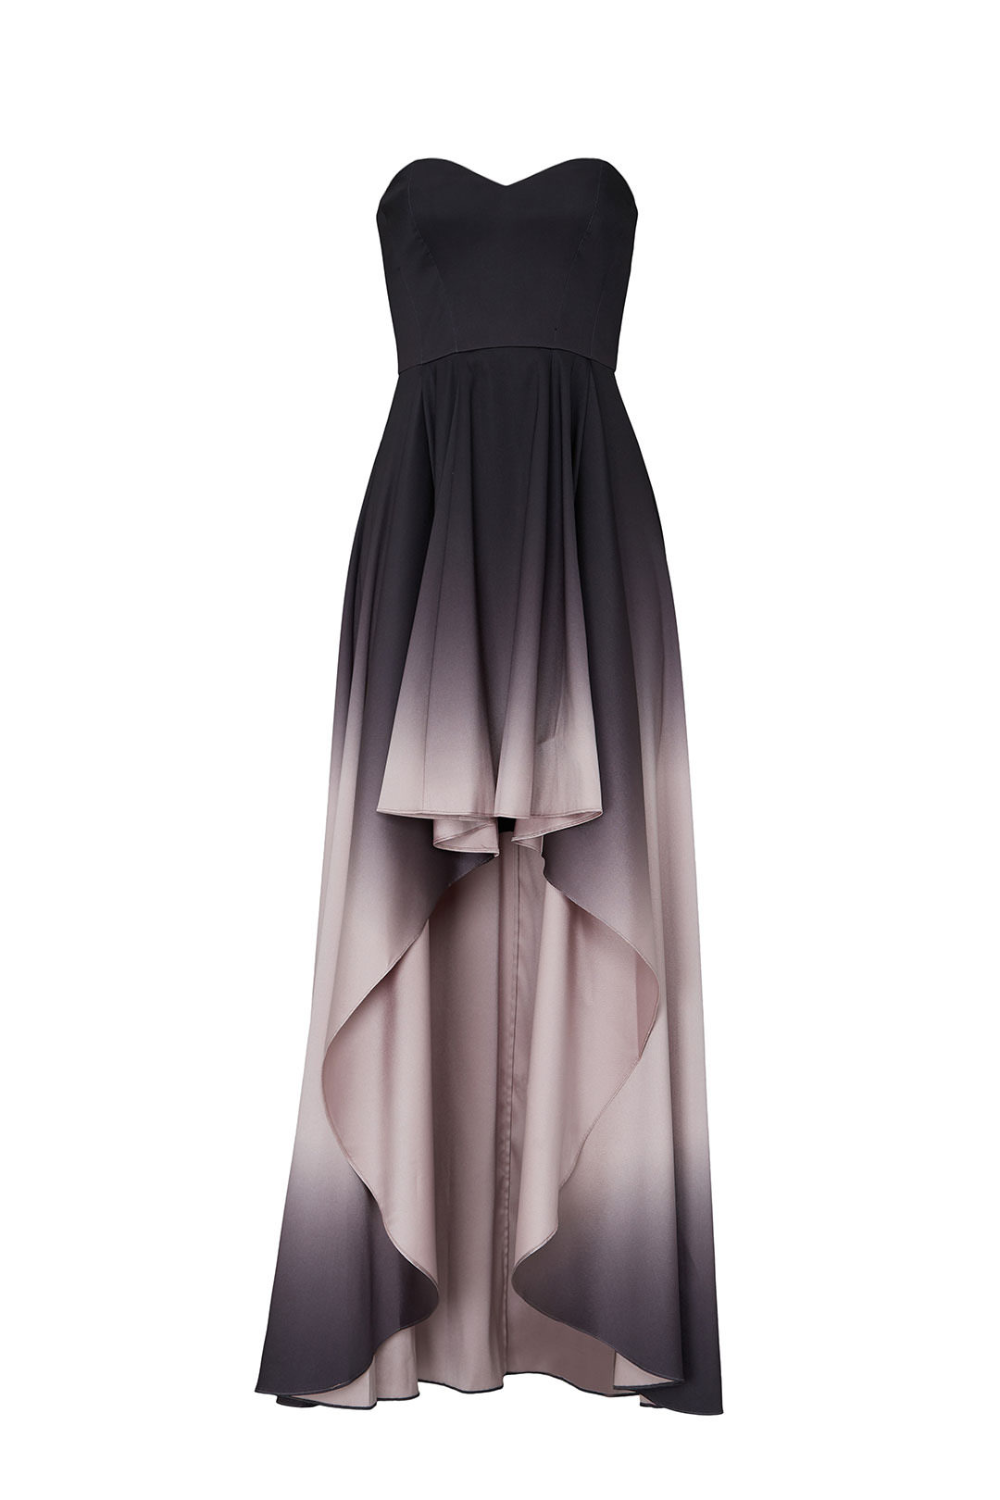 Badgley Mischka Black Ombre High Low Gown Black High Low Dress Gowns Ball Dresses [ 1500 x 1000 Pixel ]